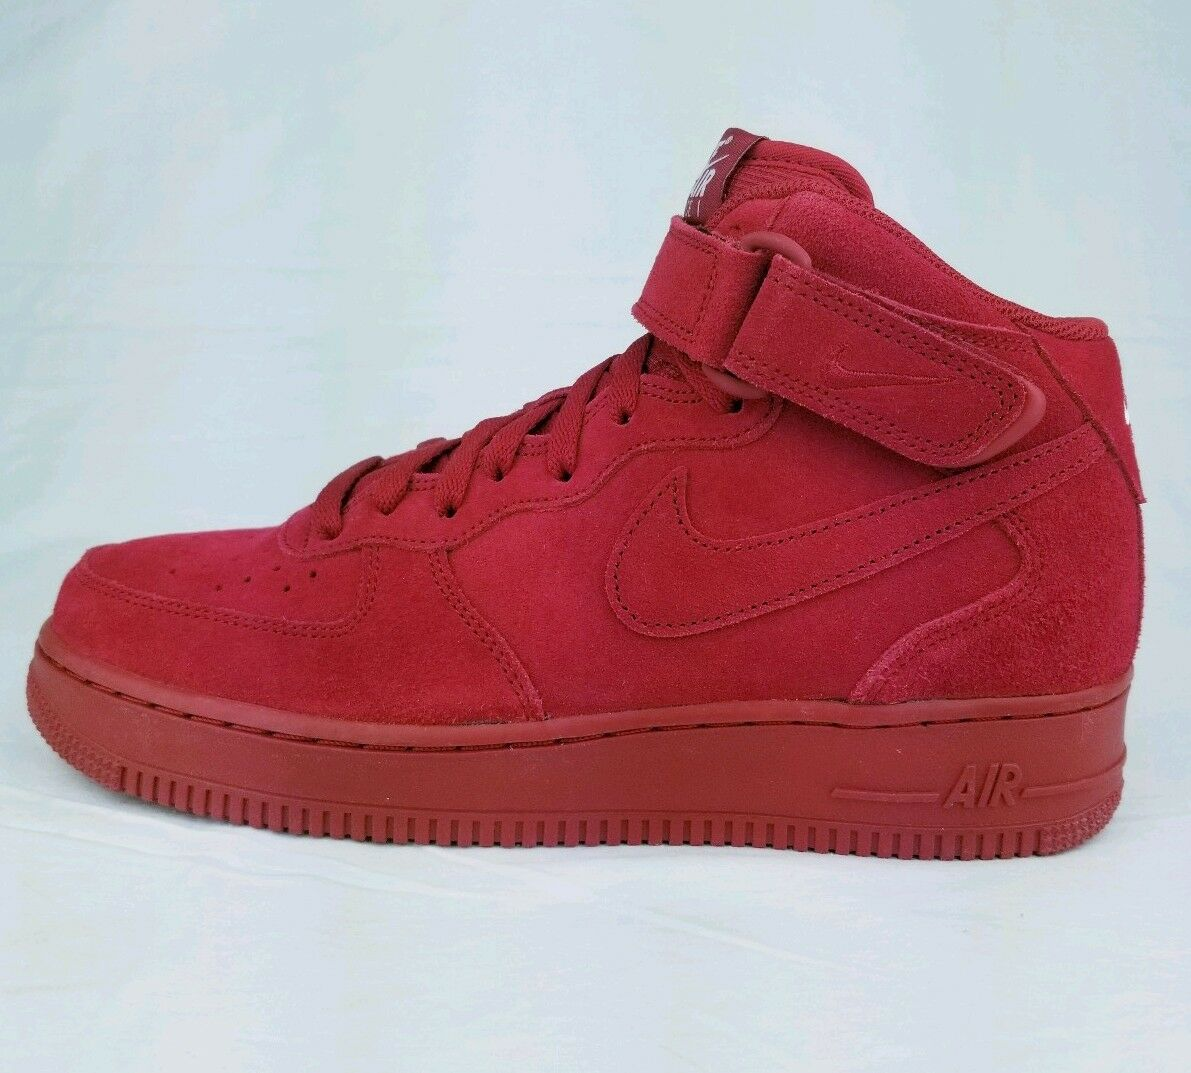 New Nike Air Force 1 Mid '07 AF1 Gym Red October White Suede 315123-609 Sz 8